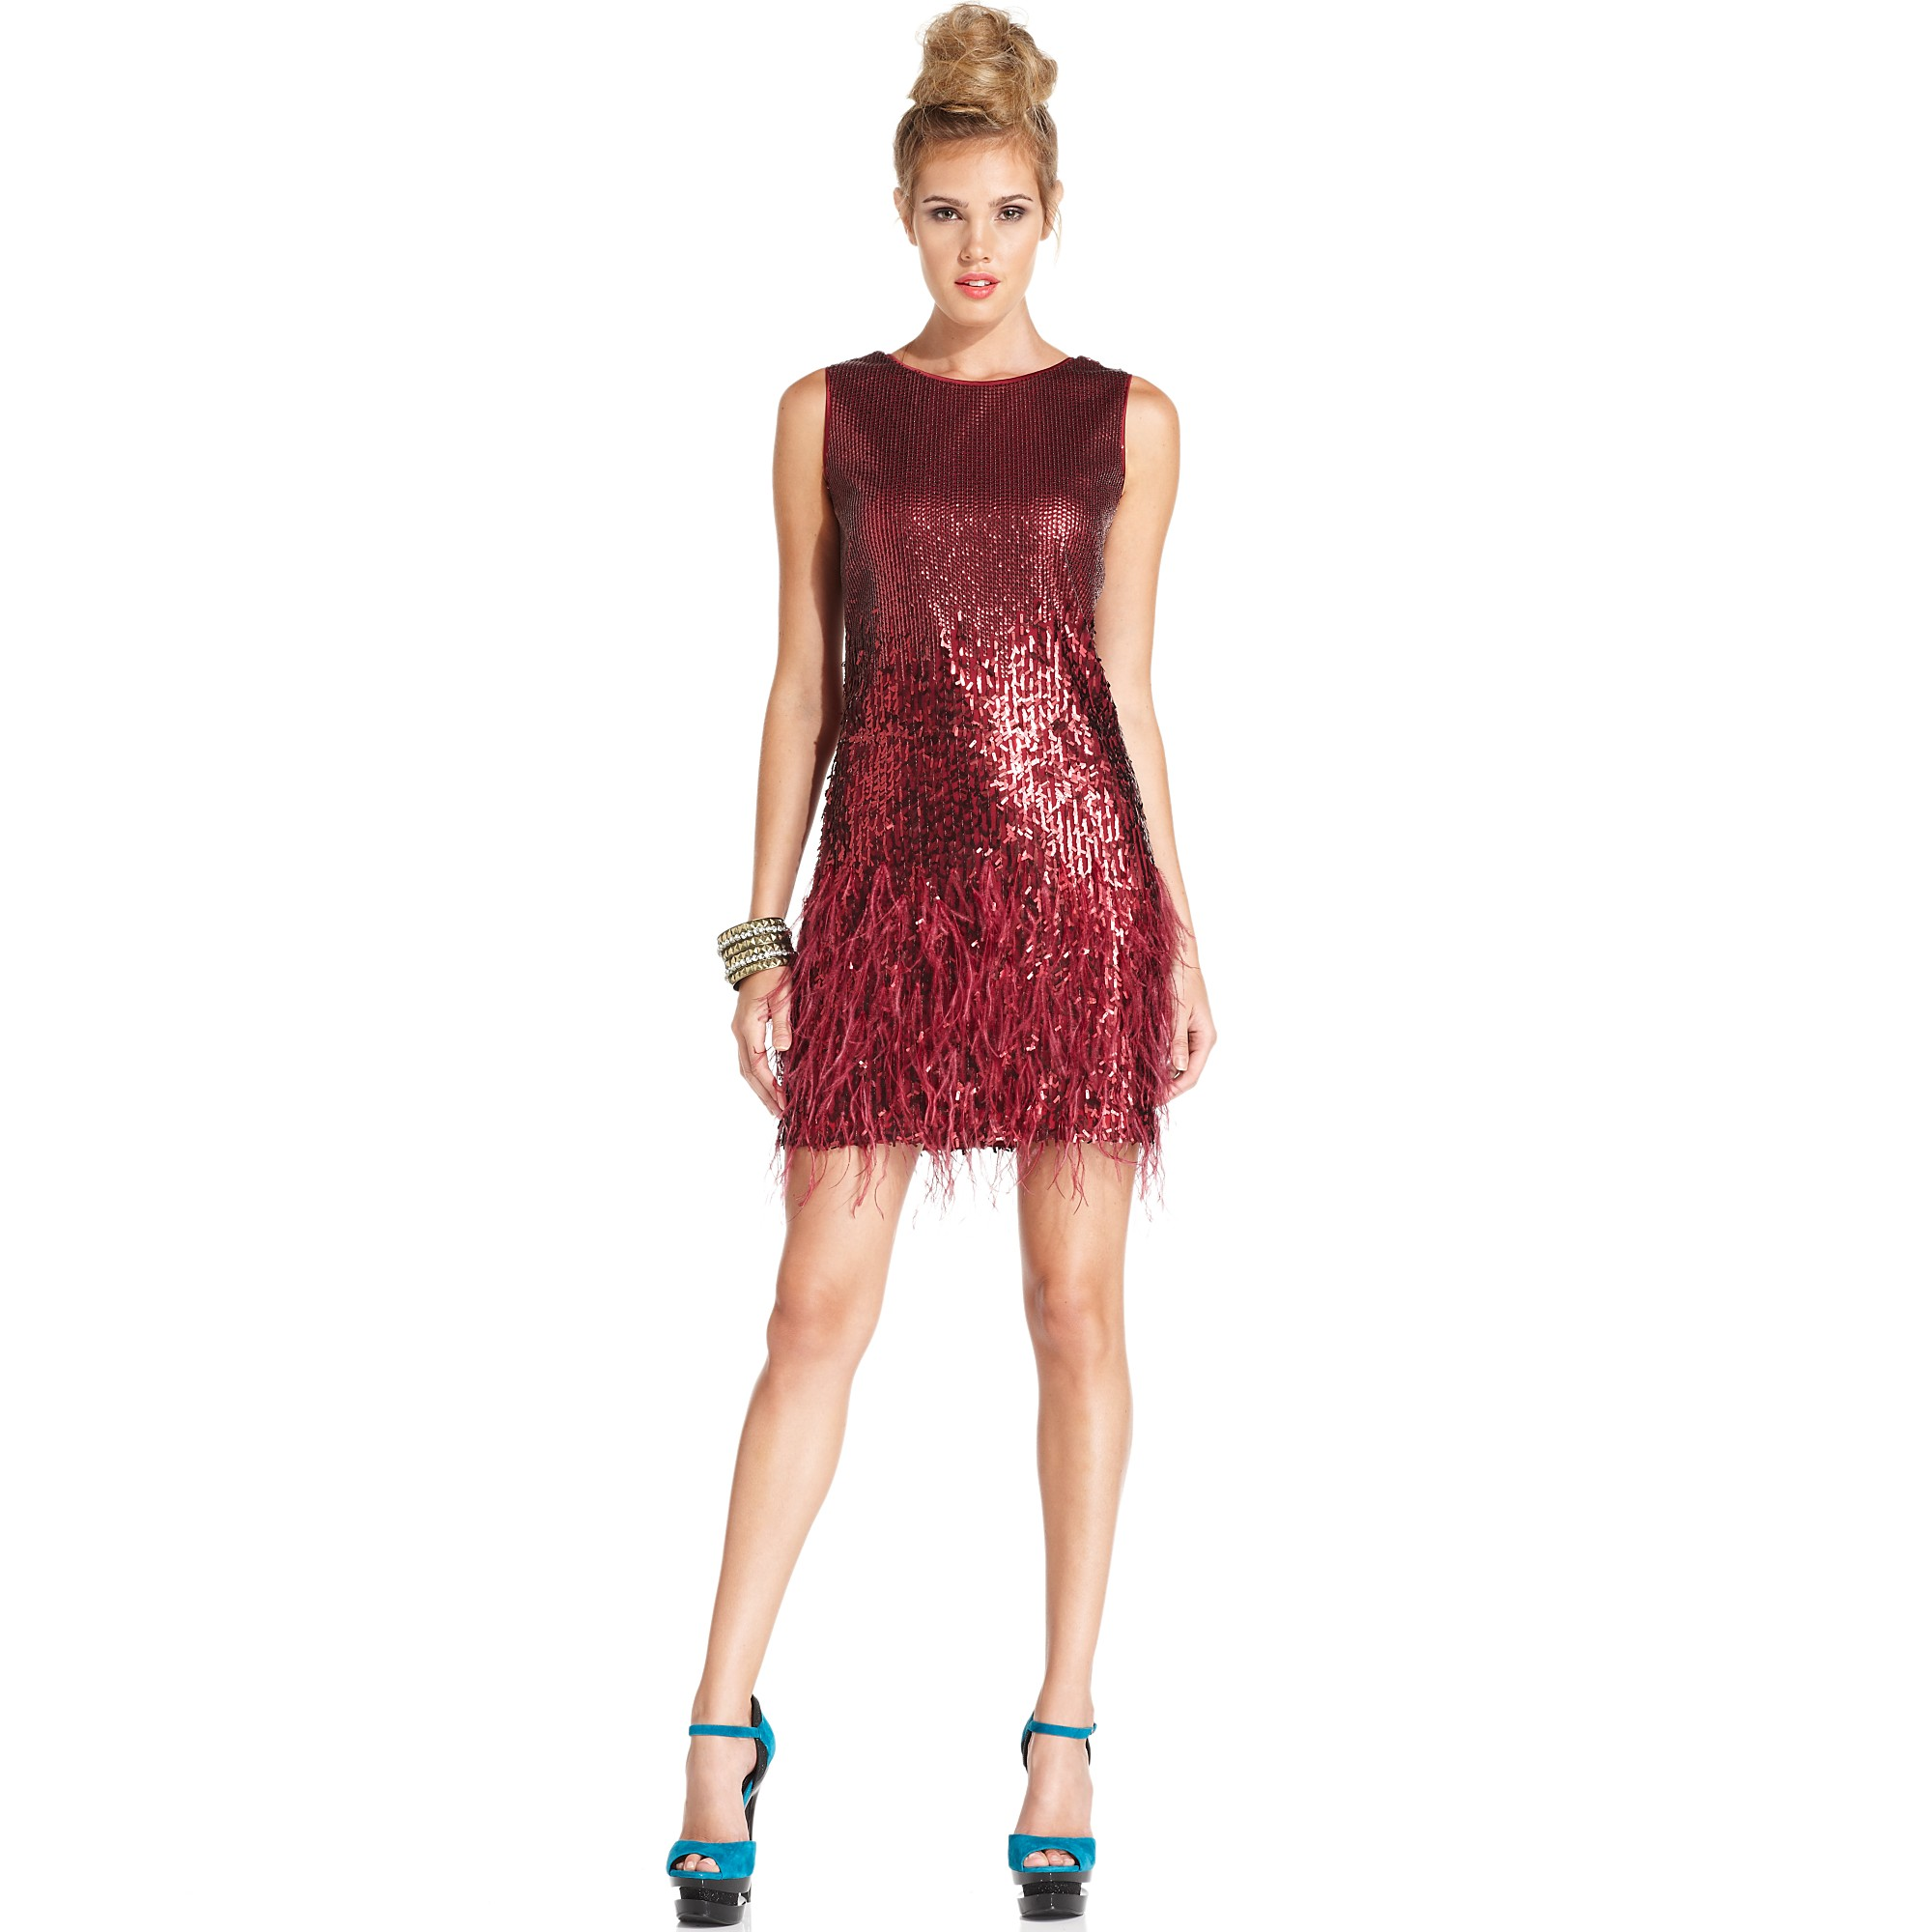 Jessica simpson Sleeveless Sequin Feather Cocktail Dress in Red | Lyst